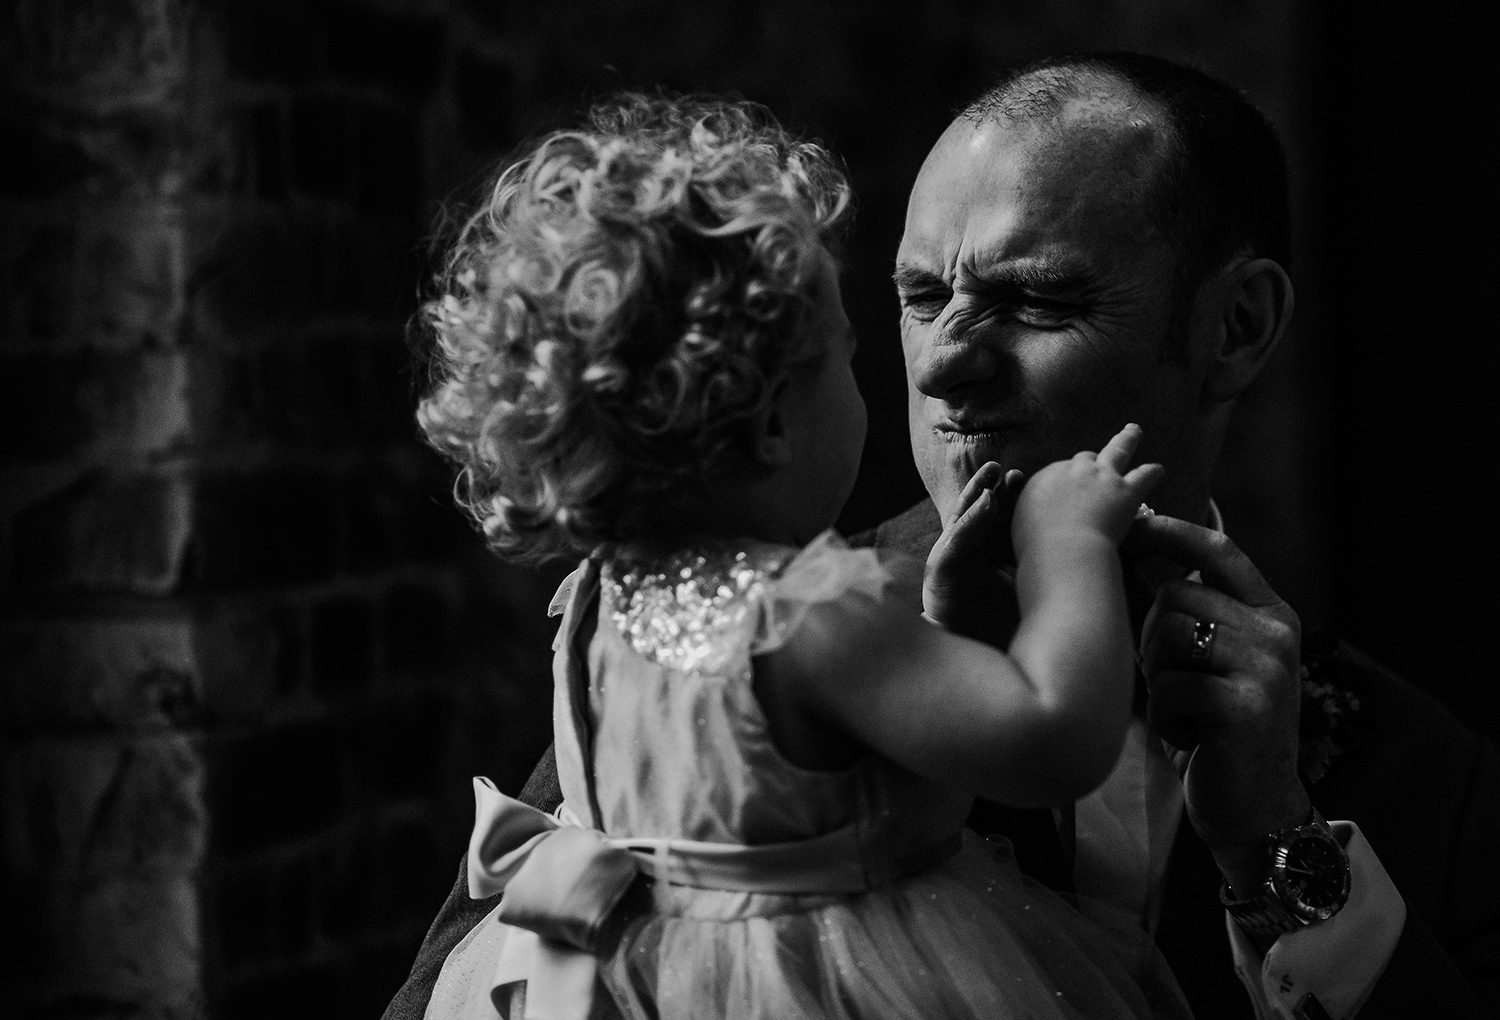 groom pulling faces at his daughter. BW photo